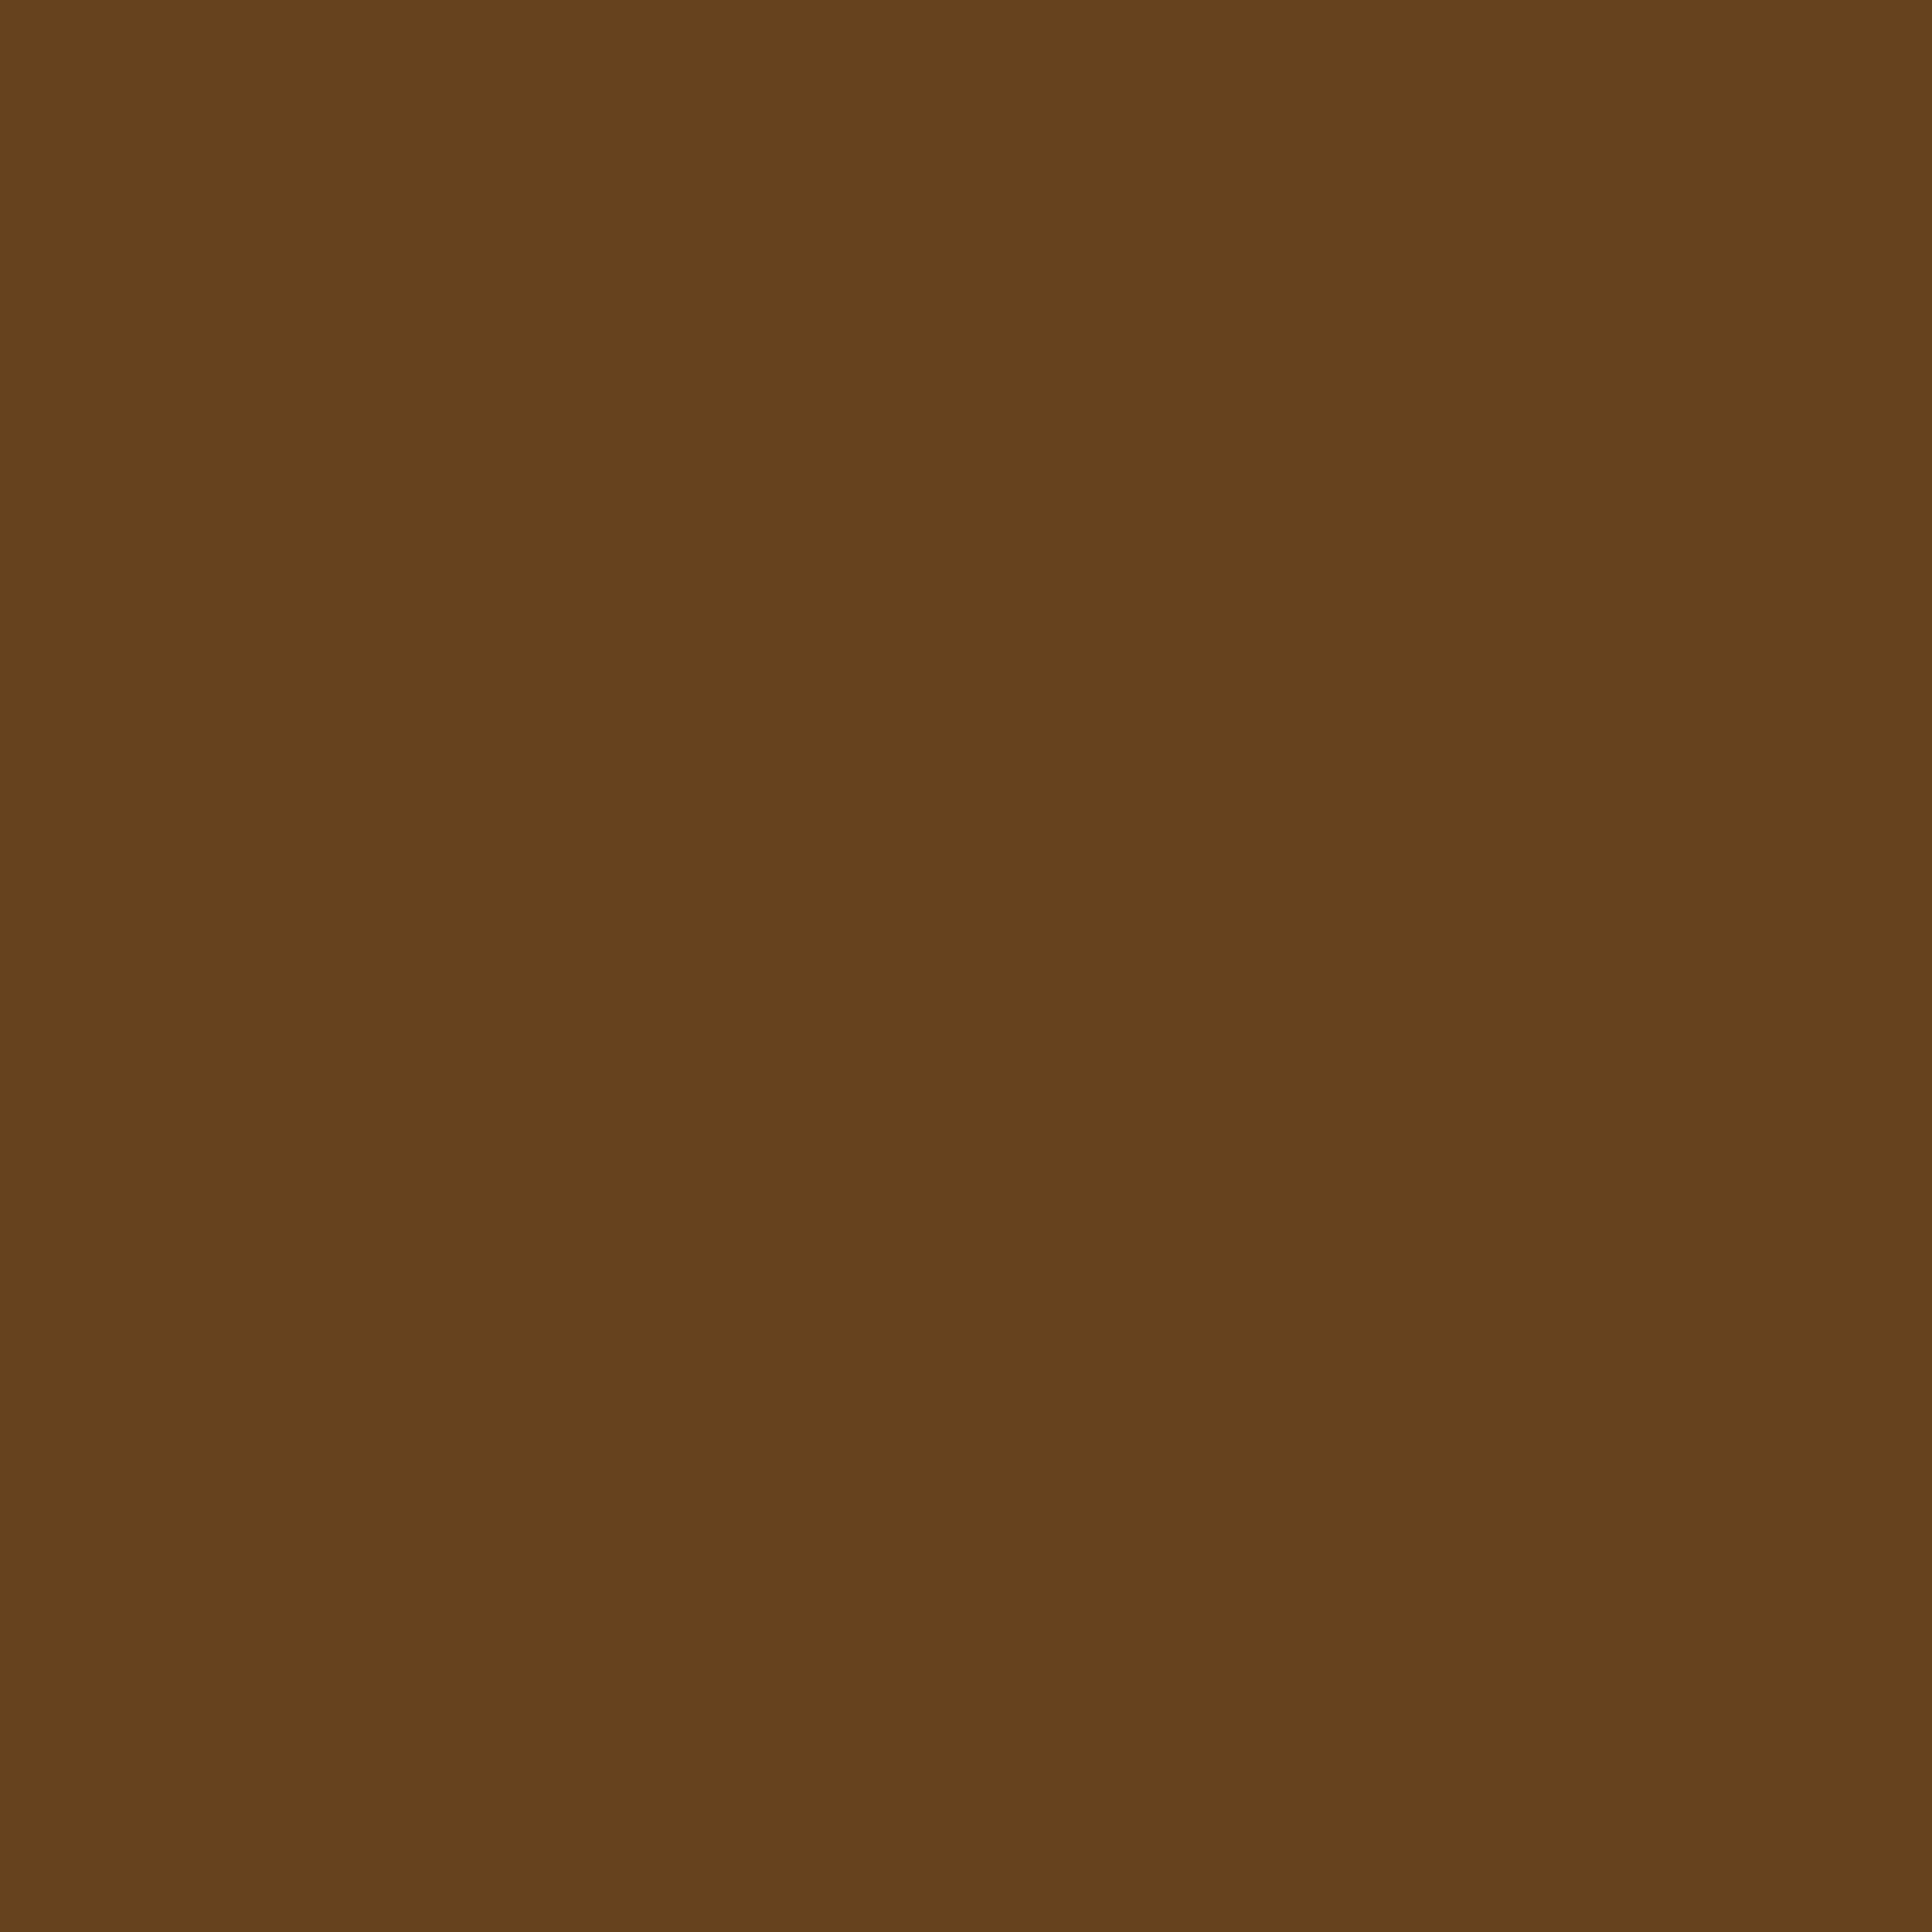 3600x3600 Otter Brown Solid Color Background